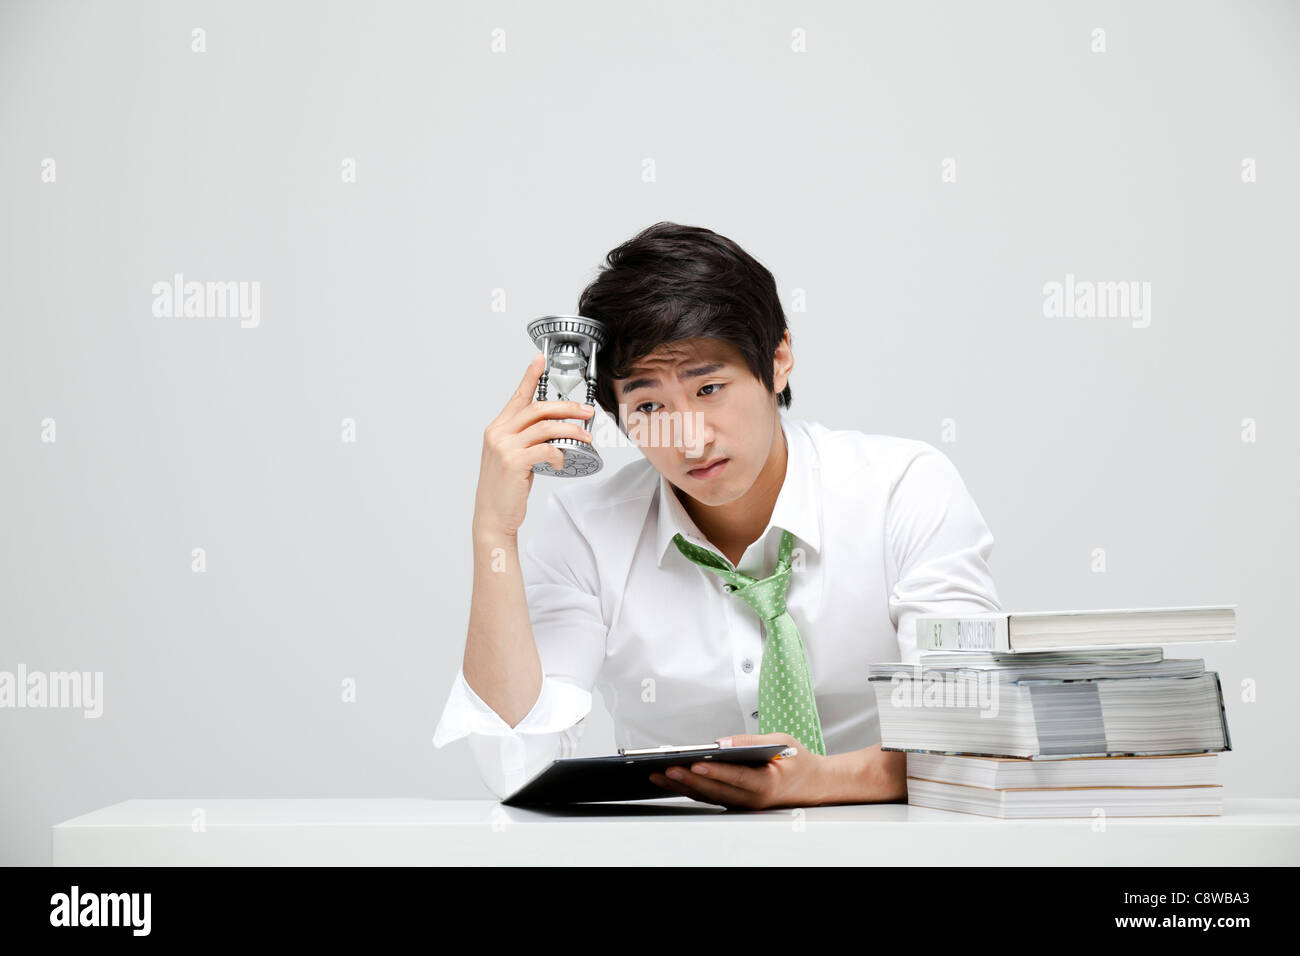 Asian Businessman Holding Hour Glass In Hand At Work Stock Photo